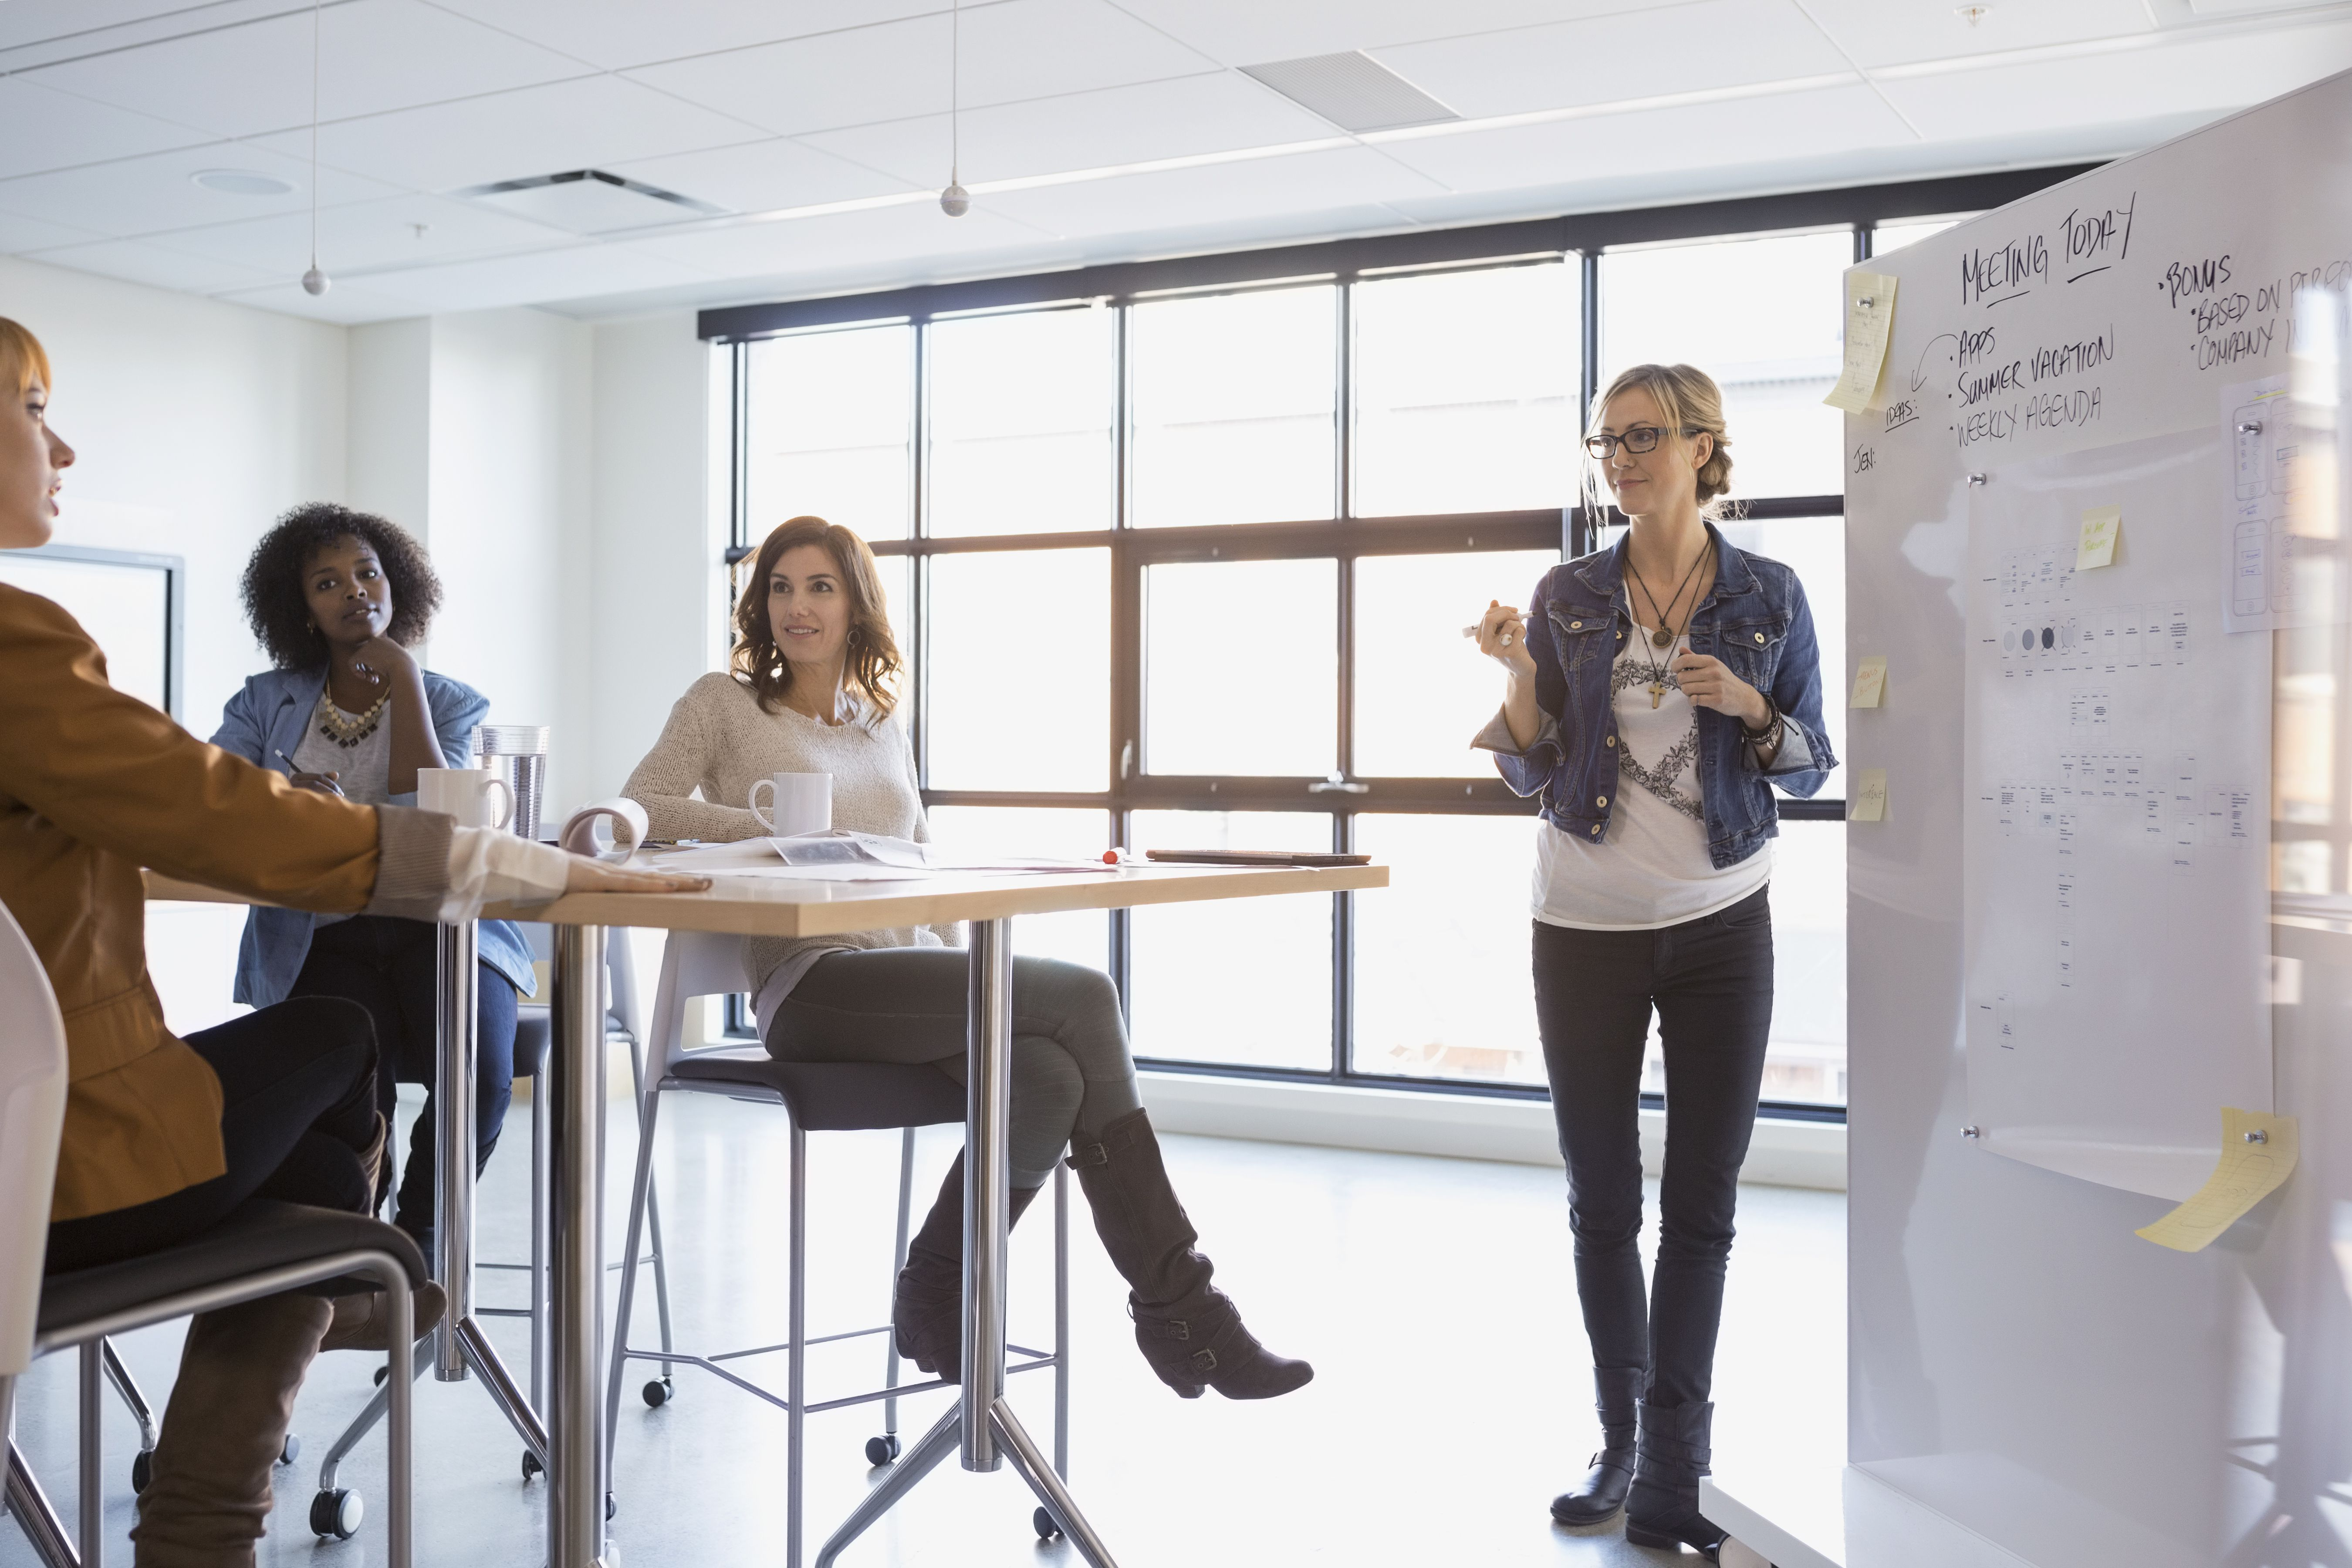 Businesswoman at whiteboard leading meeting in conference room